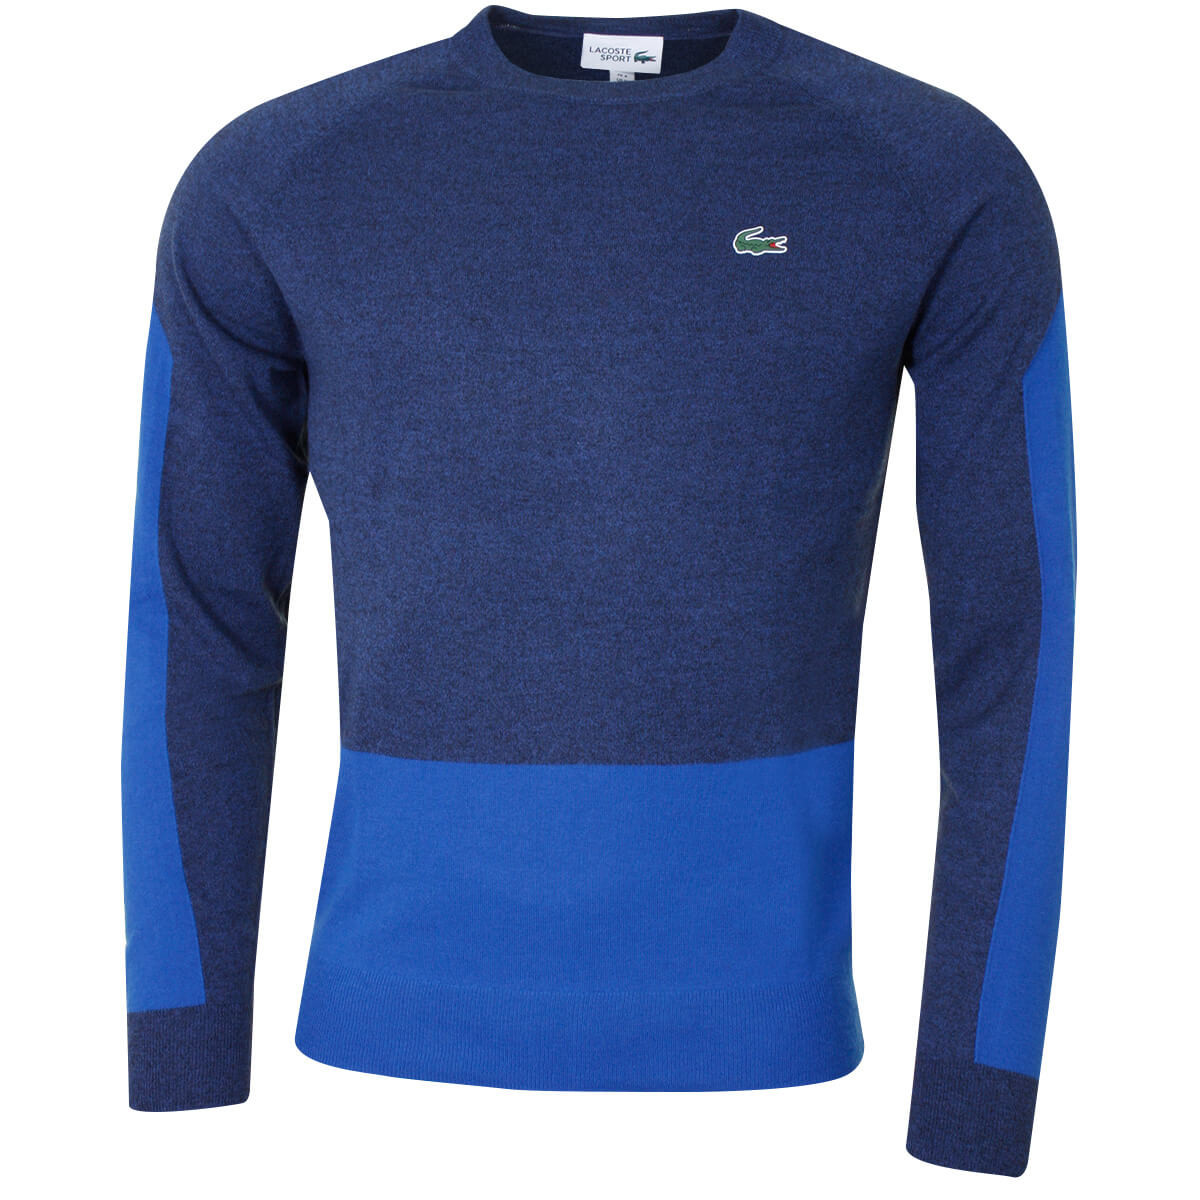 3155d8efdb Lacoste Mens 2019 Colourblock Wool Golf Sweater